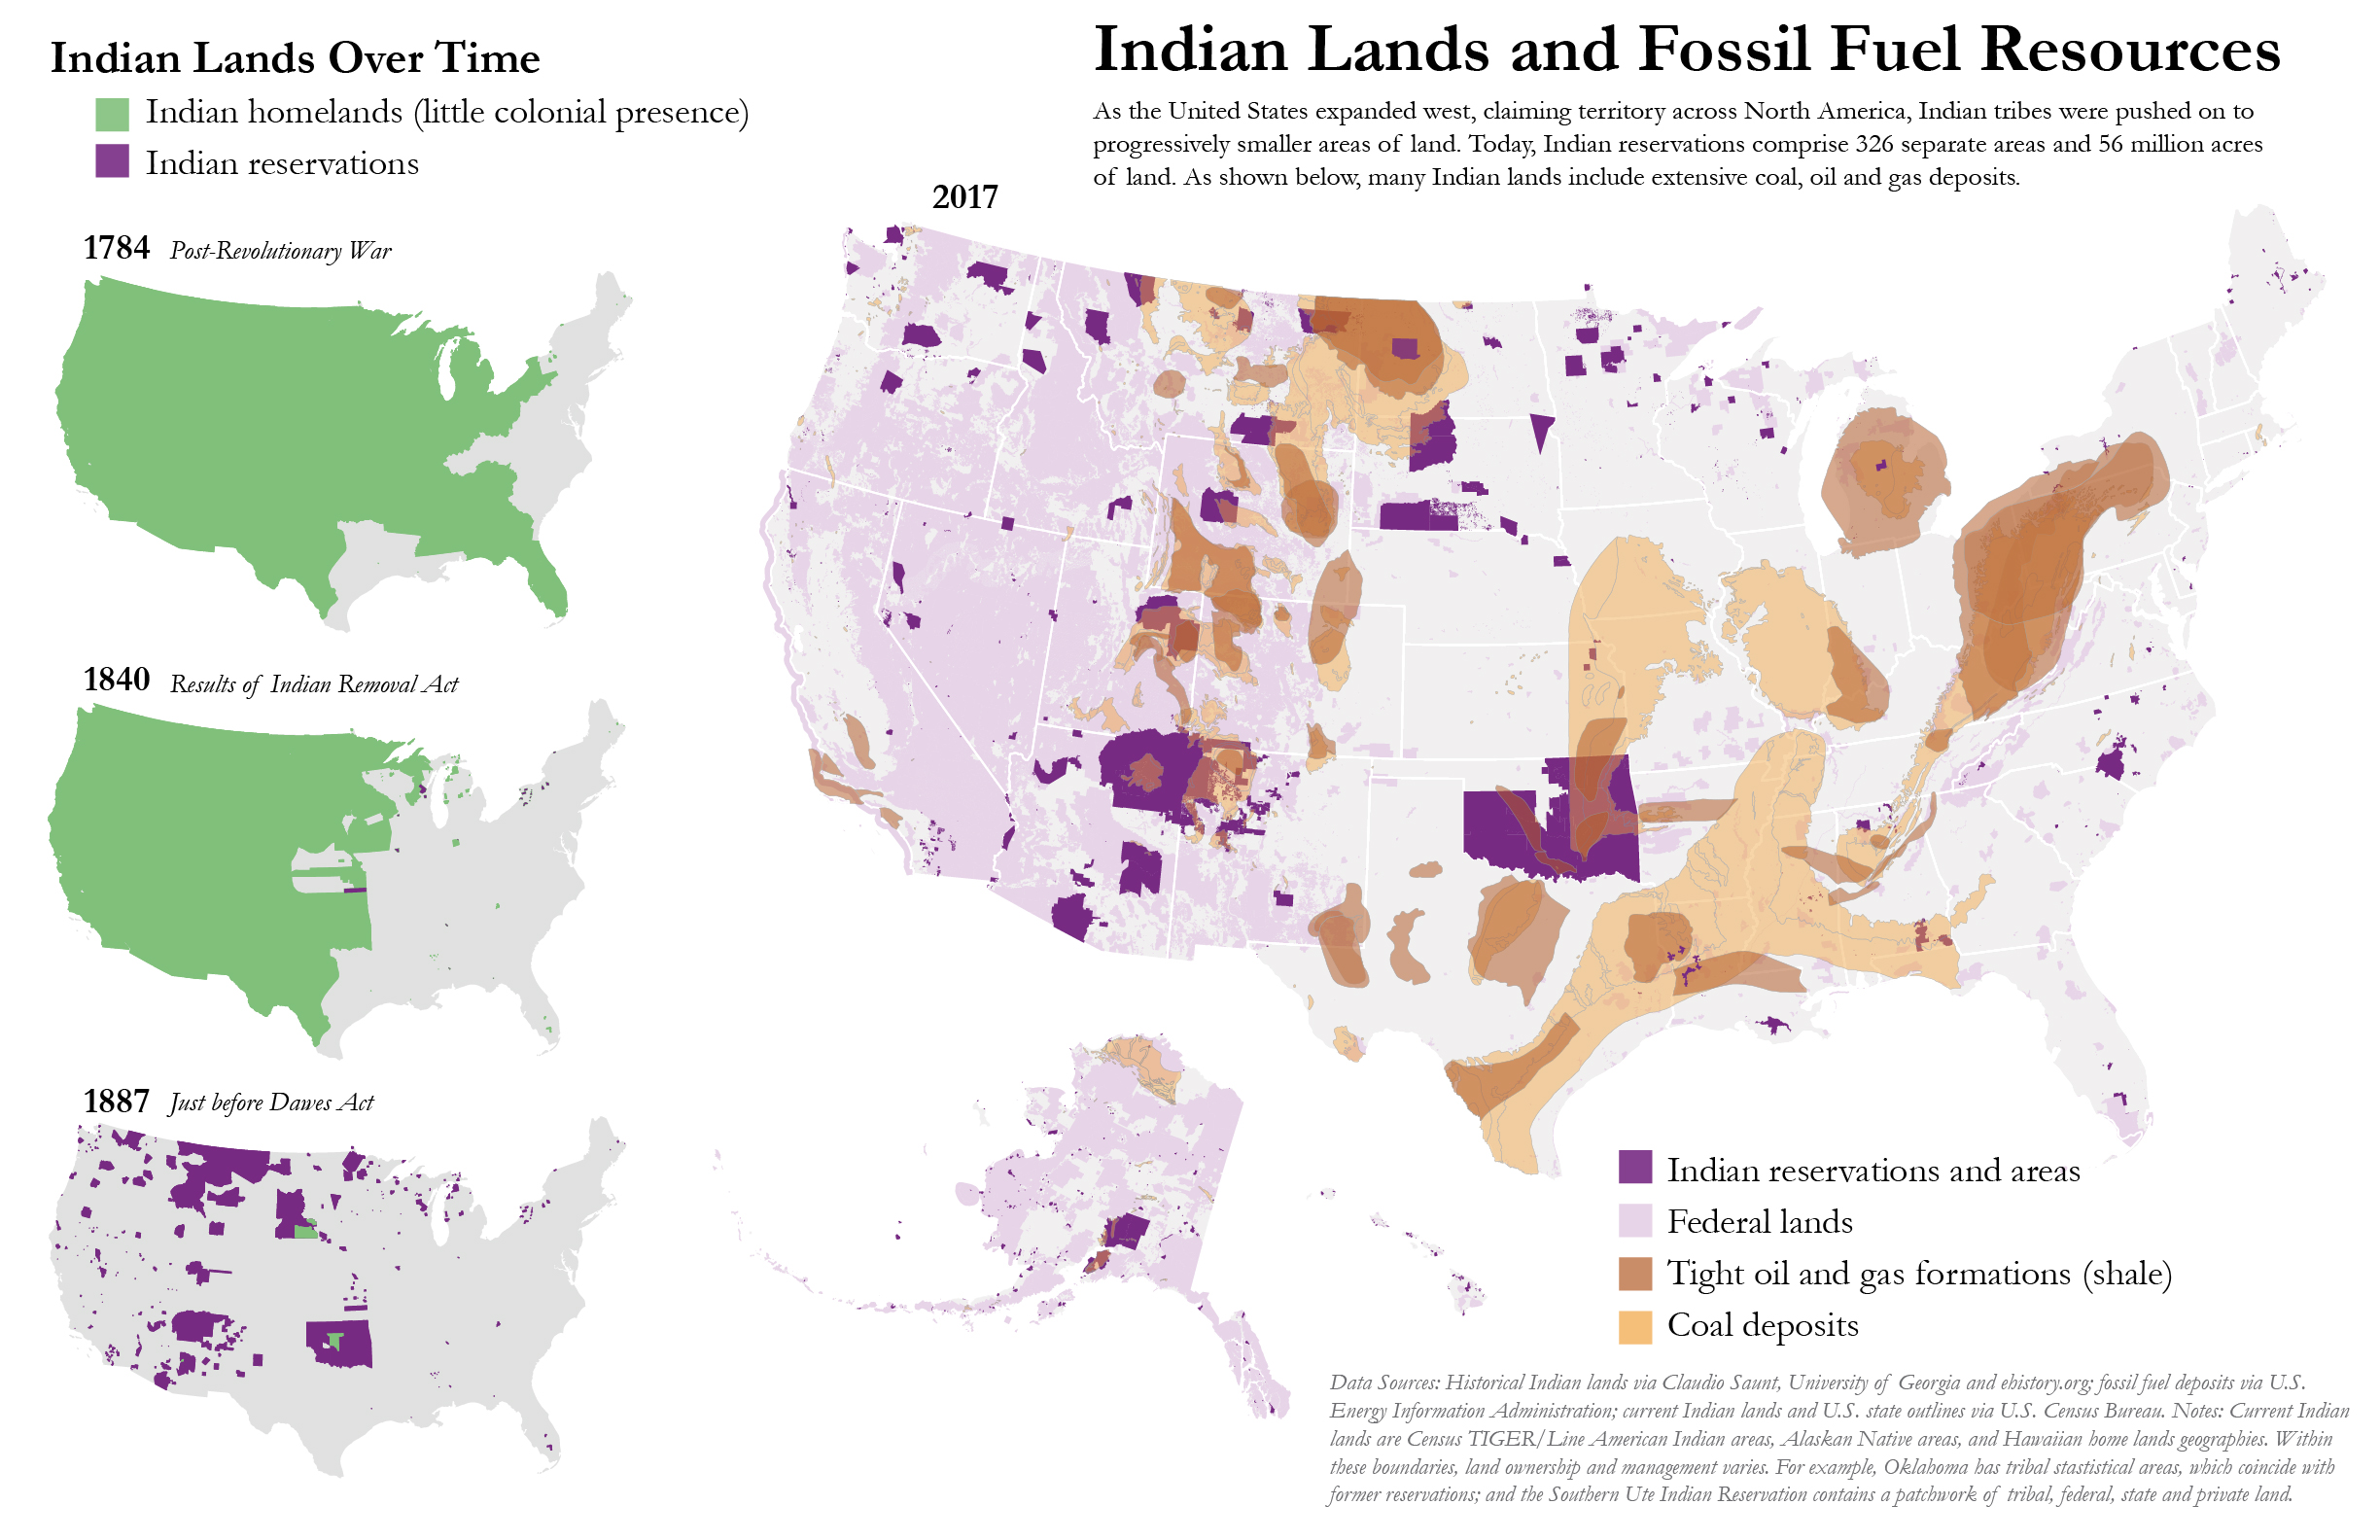 A national map showing tribal lands and fossil fuel resources